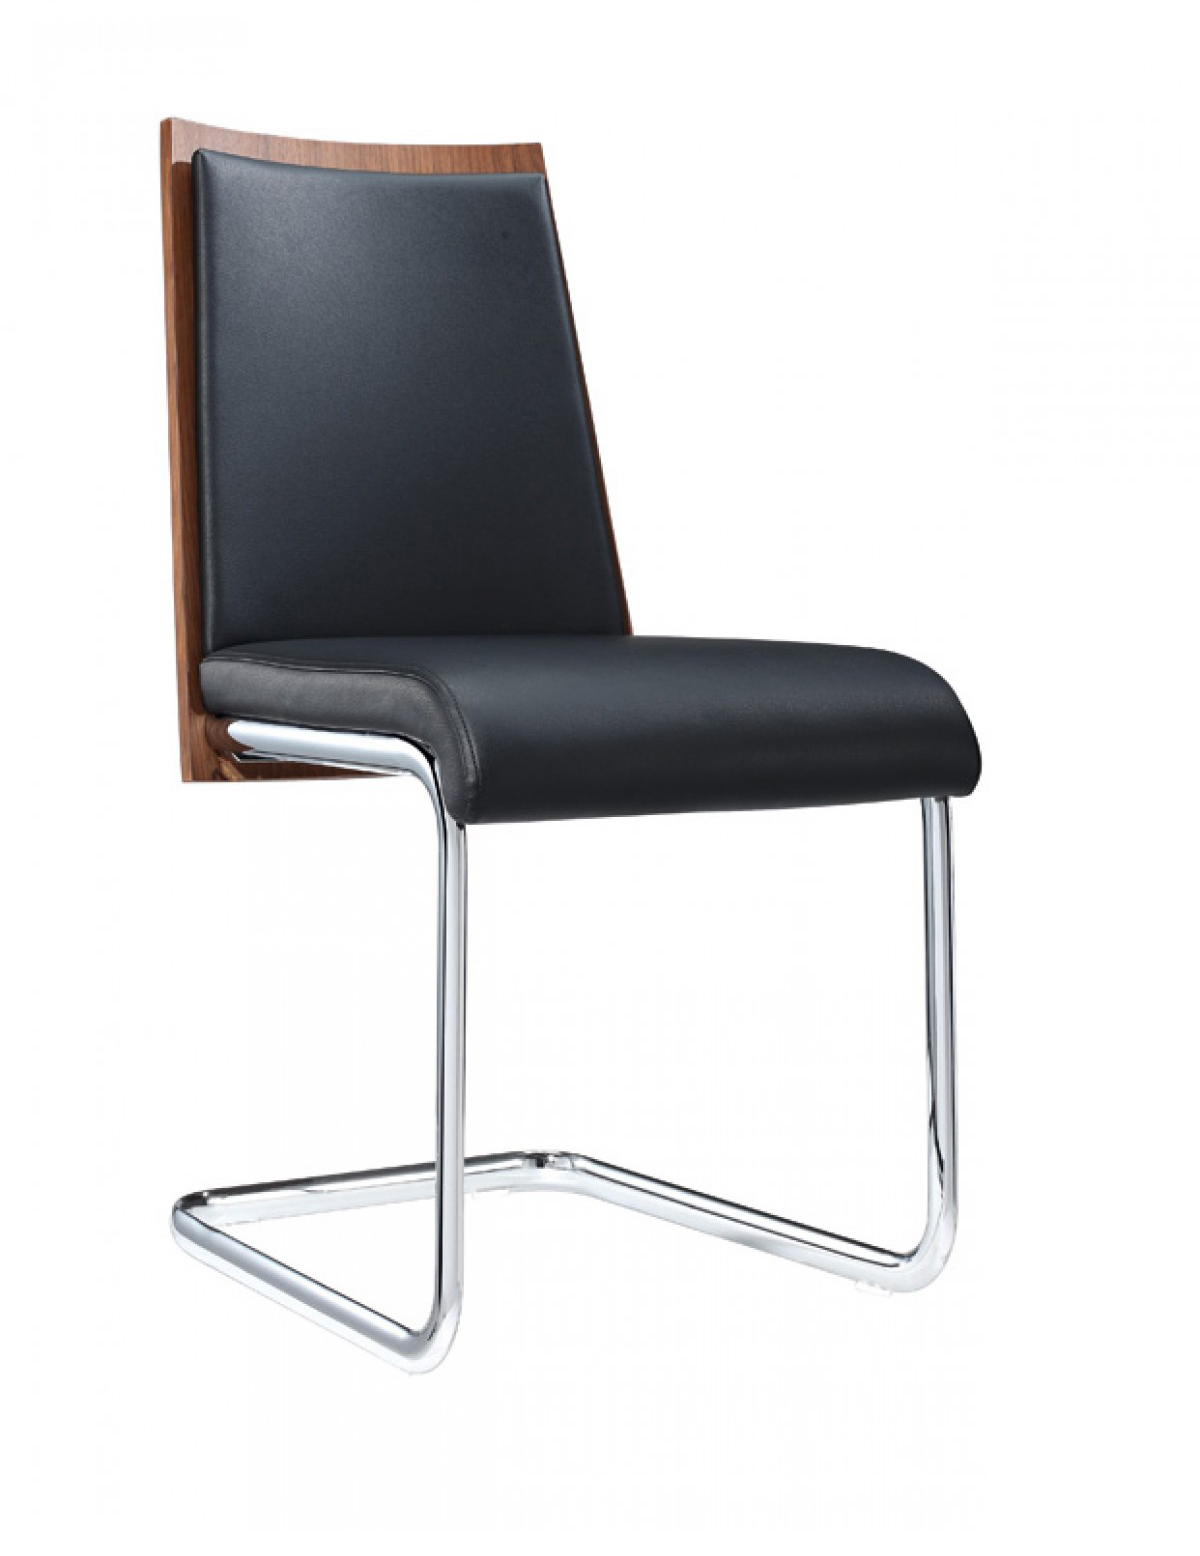 Brand new Milo Black modern Dining Chair available at AdvancedInteriorDesigns.com